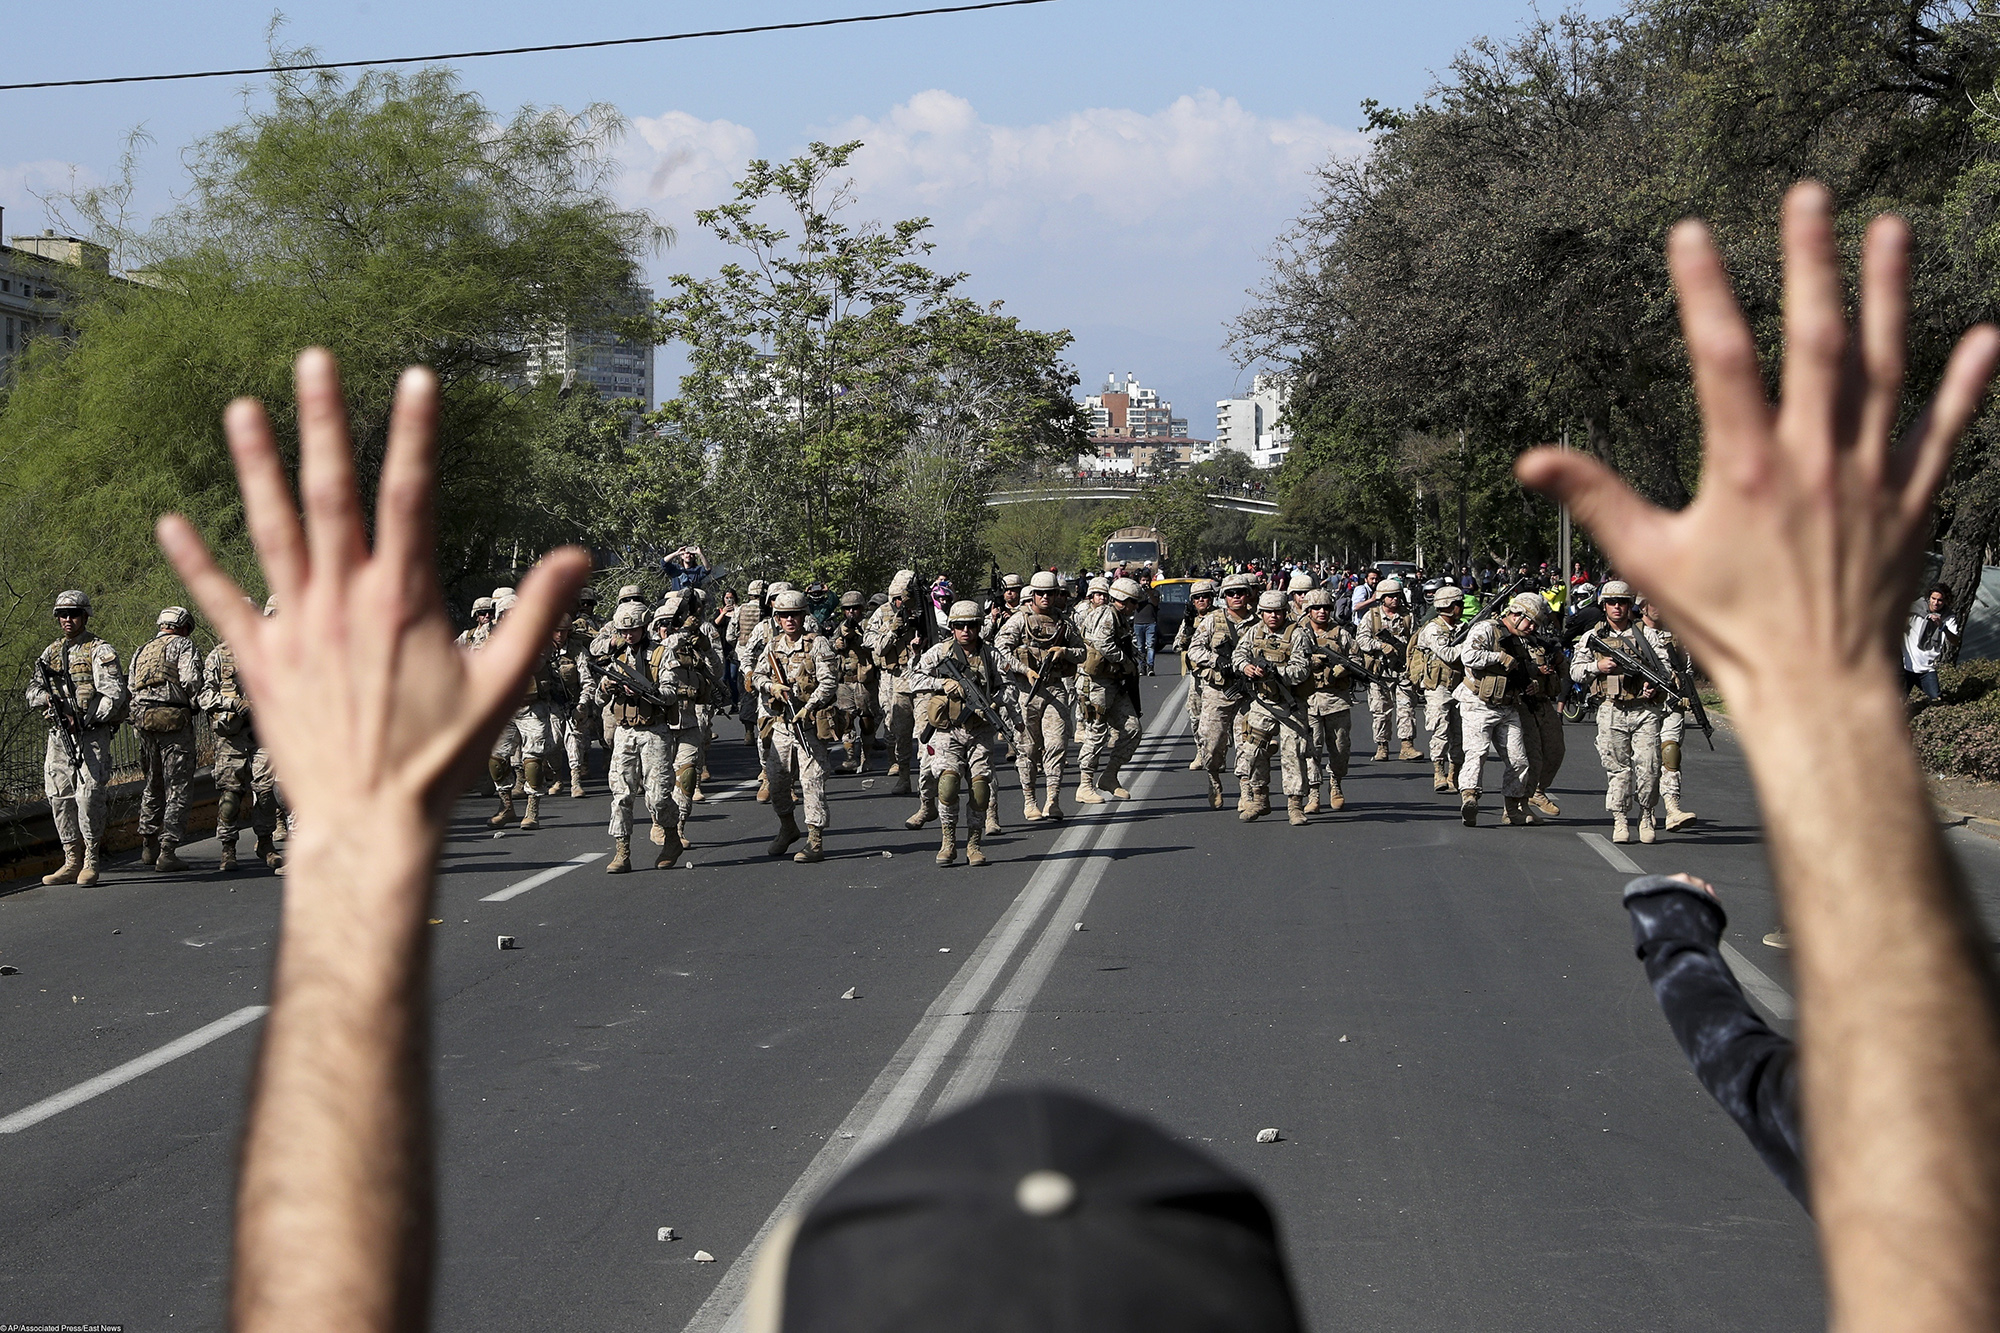 A demonstrator holds up his hands toward advancing soldiers as a state of emergency remains in effect in Santiago, Chile, Sunday, Oct. 20, 2019. Protests in the country have spilled over into a new day, even after President Sebastian Pinera cancelled the subway fare hike that prompted massive and violent demonstrations